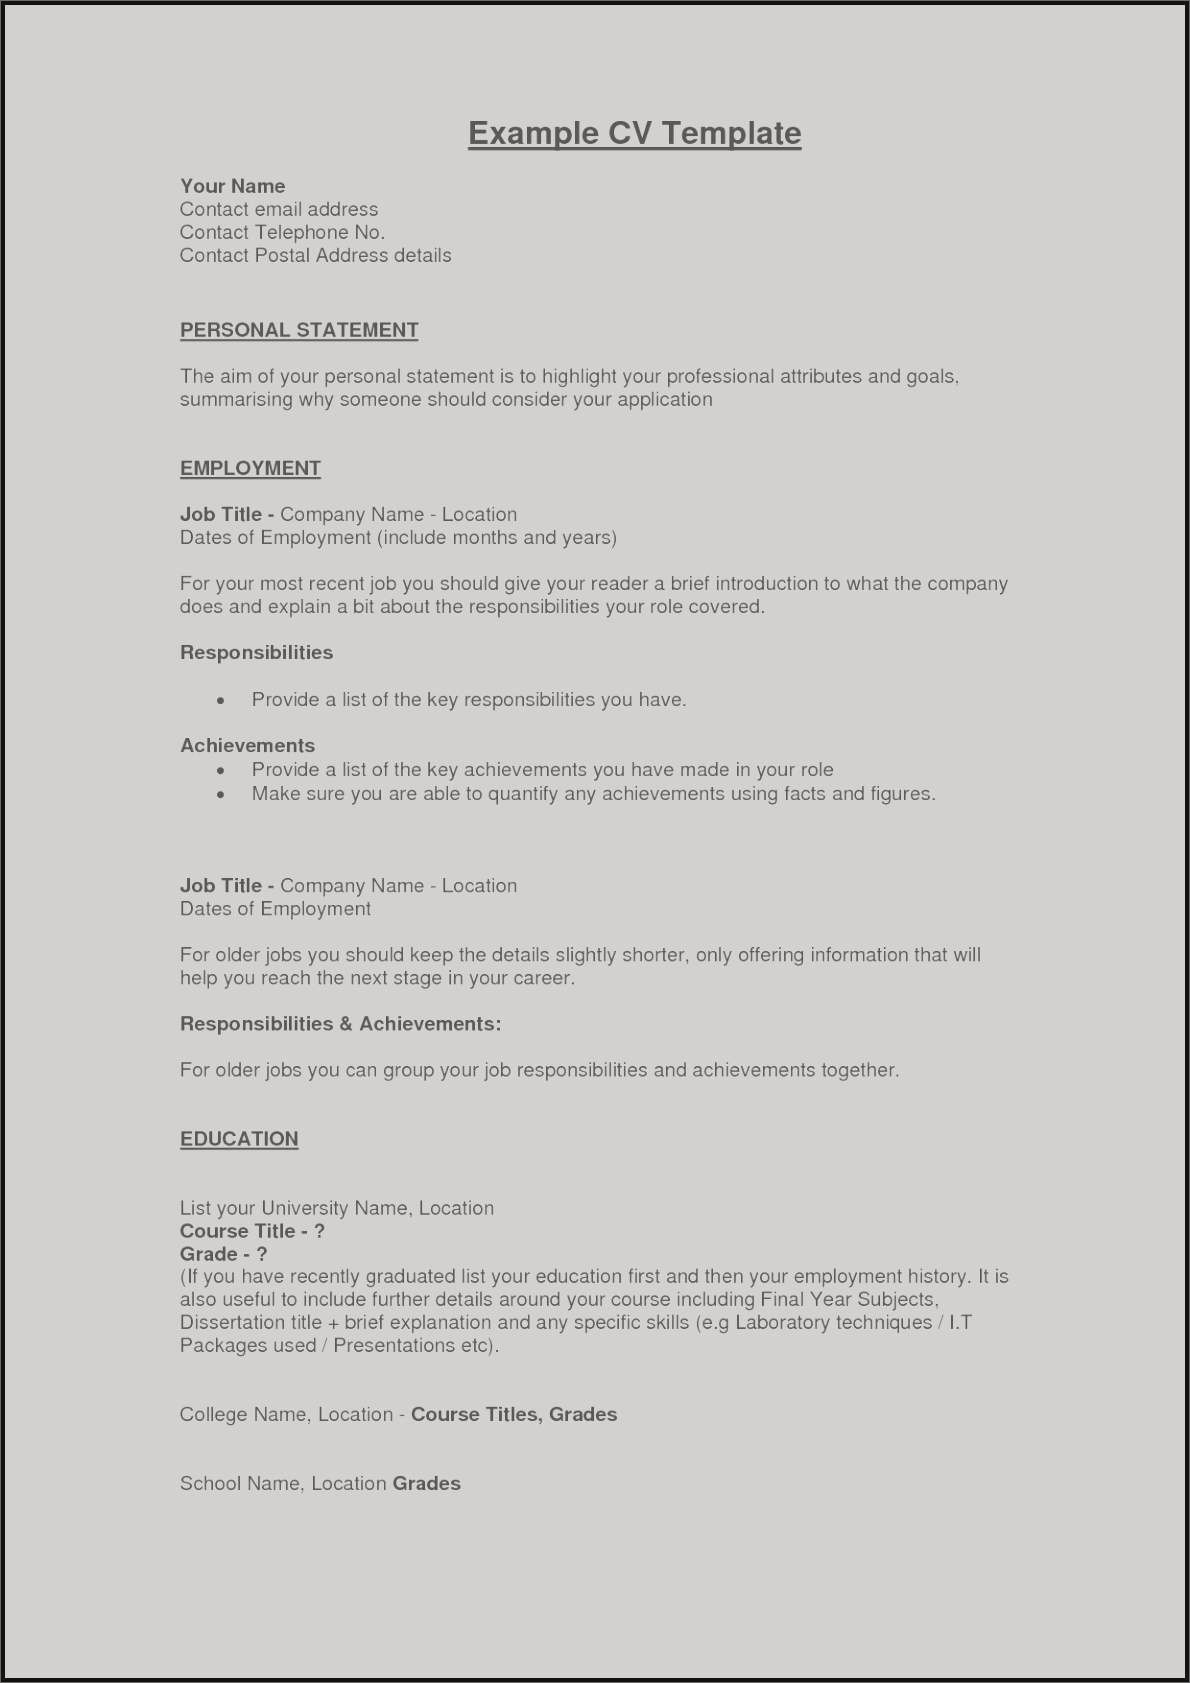 Job Titles for Resume - Job Titles for Resume Best Example Perfect Resume Fresh Examples